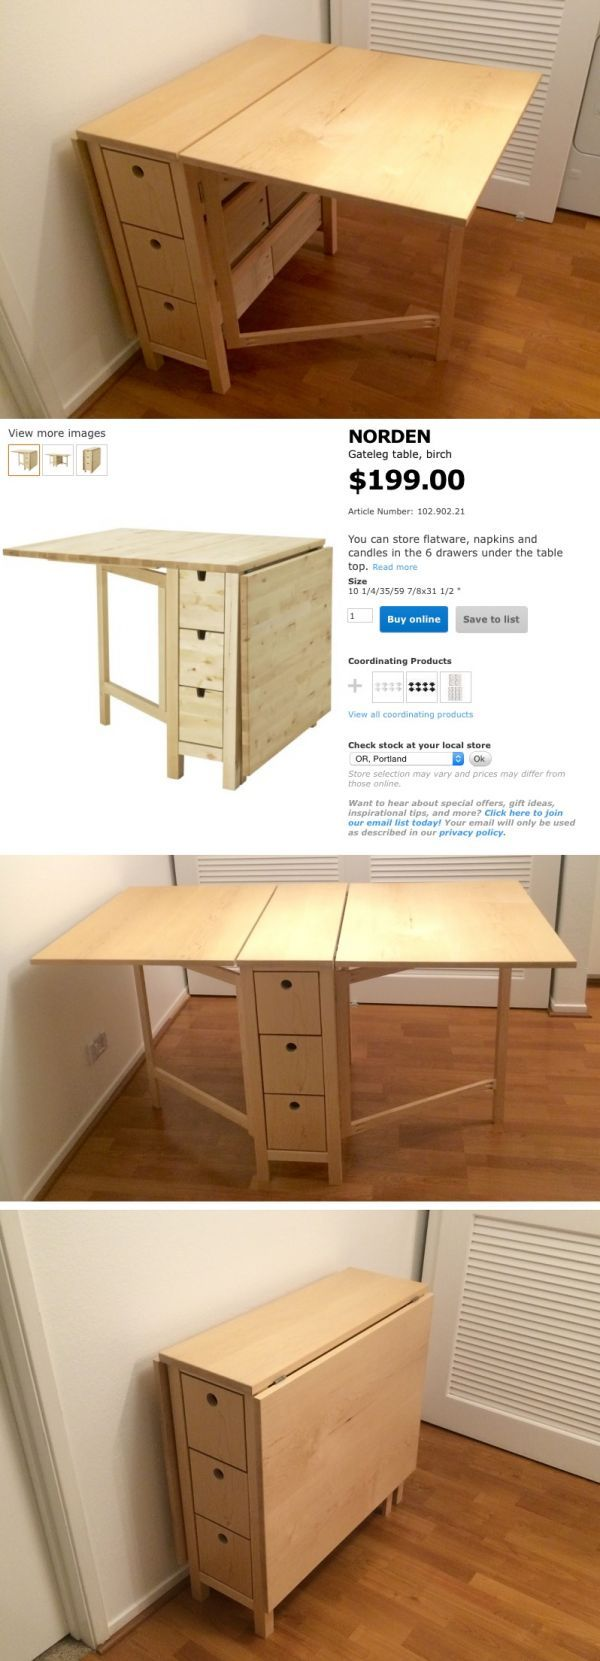 wife saw an ikea table liked but thereu0027s no ikea here i said - Drafting Table Ikea